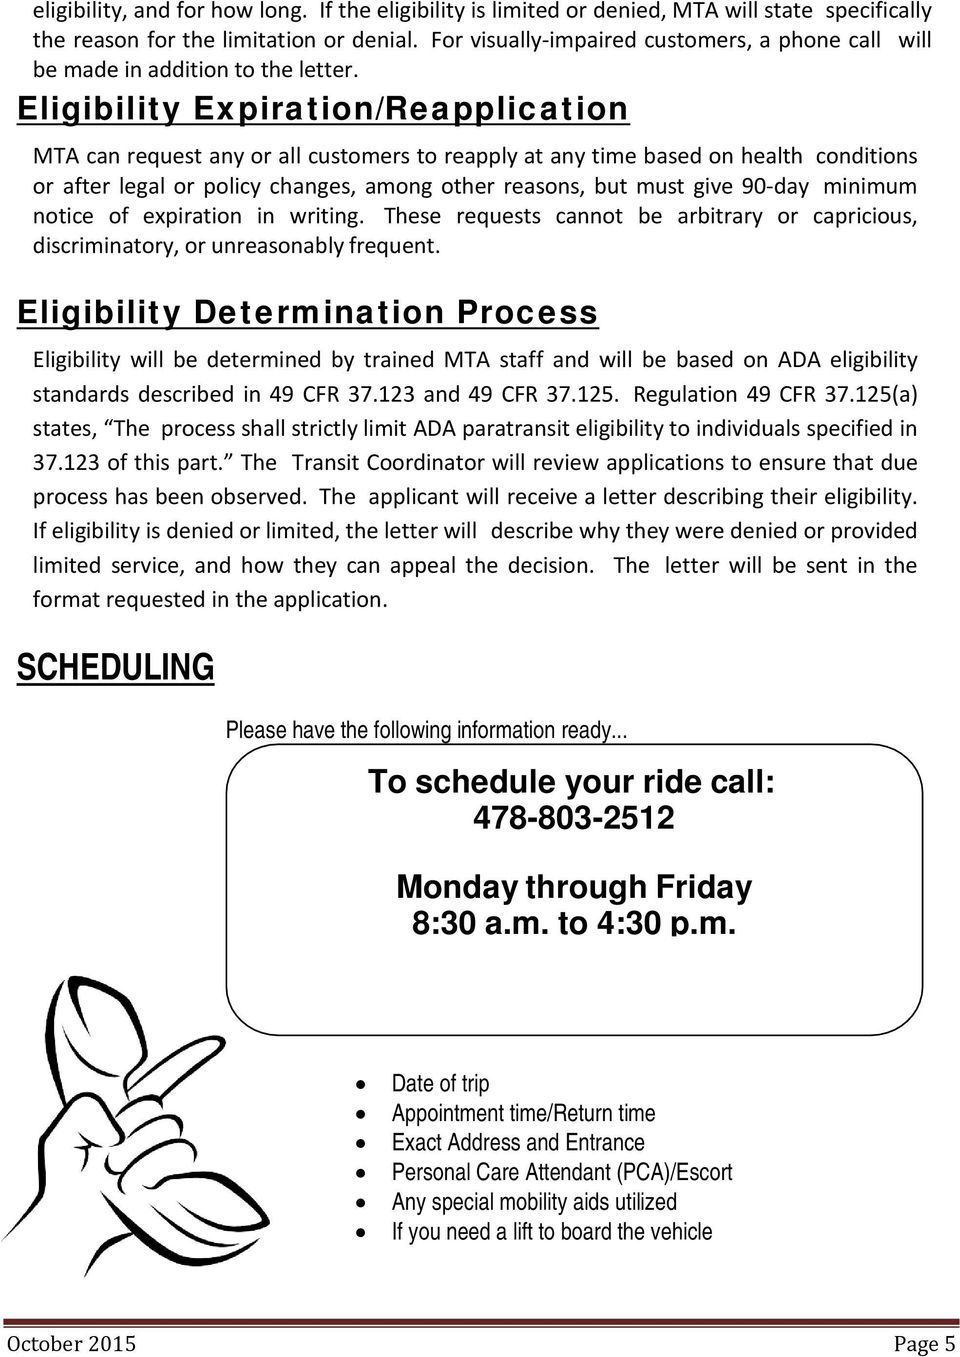 Eligibility Expiration/Reapplication MTA can request any or all customers to reapply at any time based on health conditions or after legal or policy changes, among other reasons, but must give 90-day